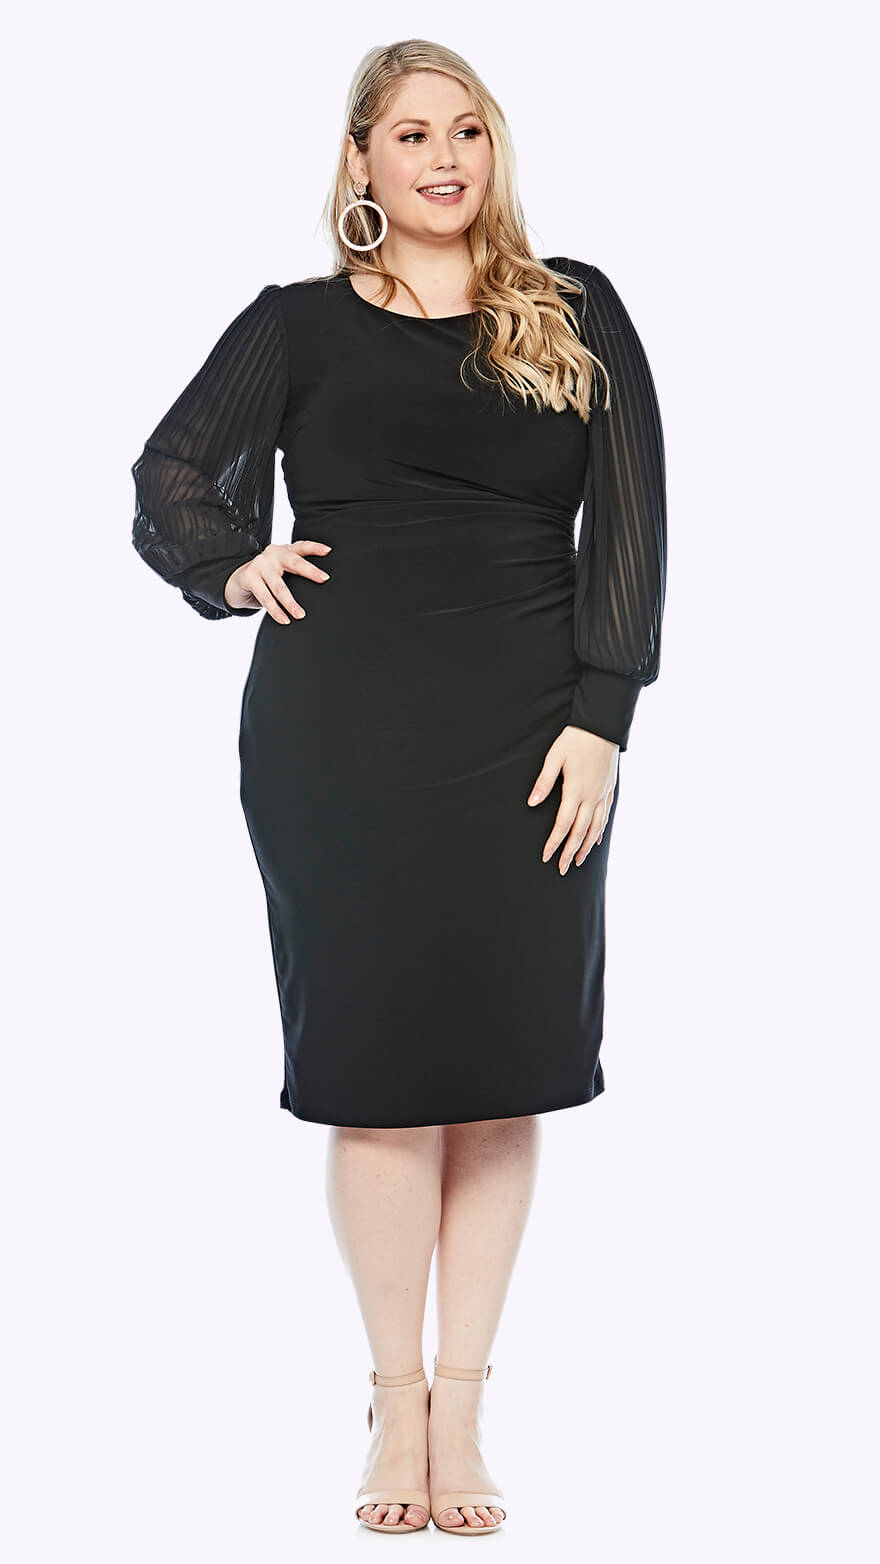 LJ0381 Mid-length shift dress with round neckline and full chiffon sleeve with cuff